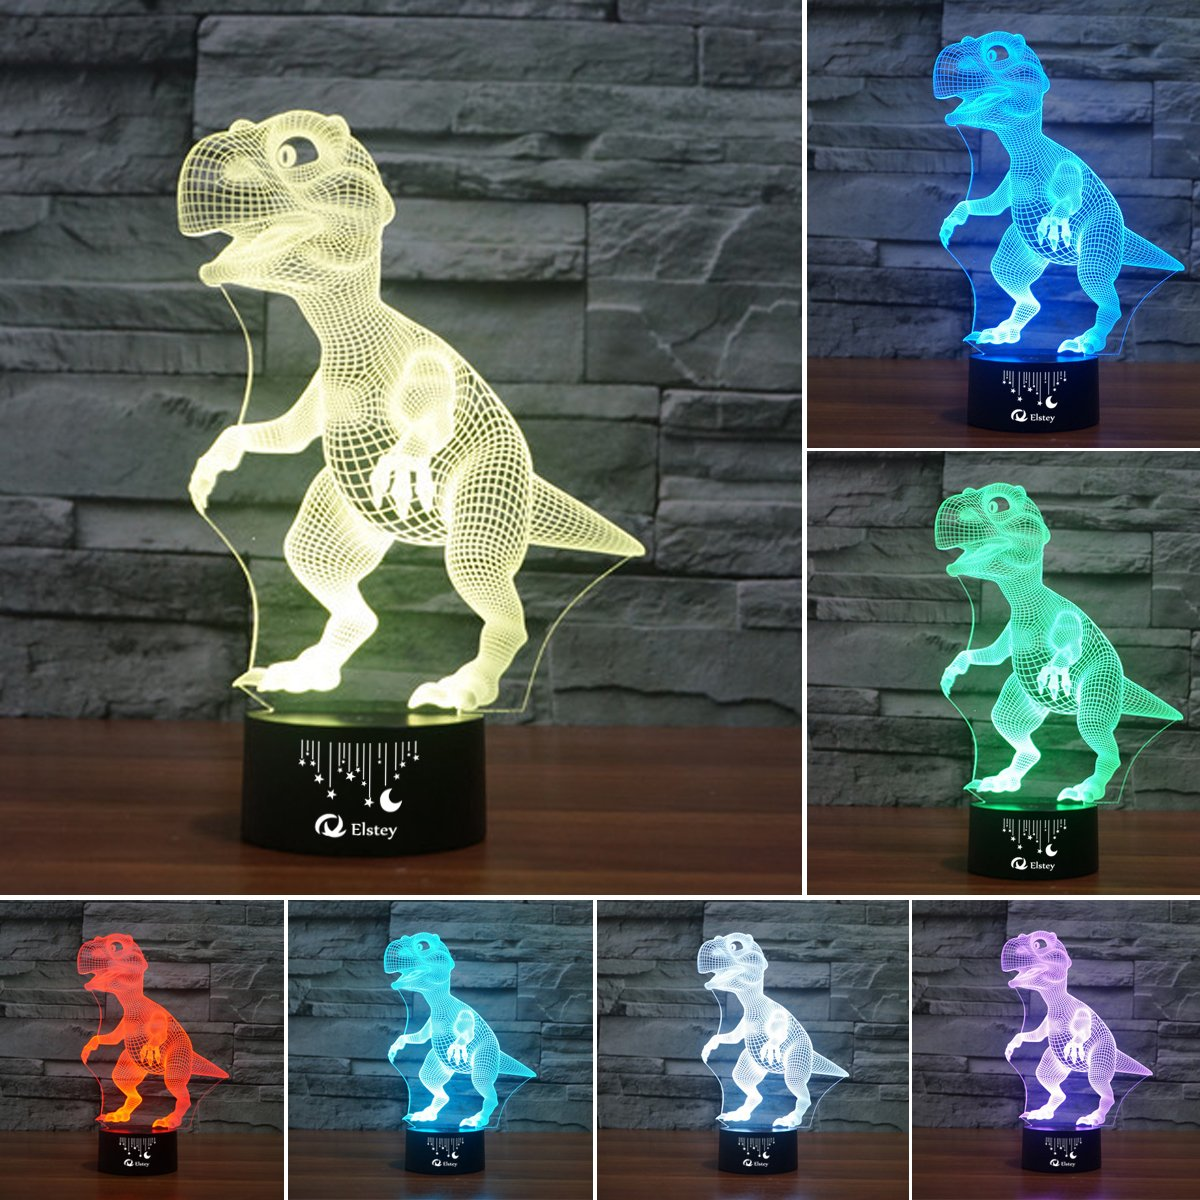 Dinosaur 3D Night Light Touch Table Desk Lamp, Elsley 7 Colors 3D Optical Illusion Lights with Acrylic Flat & ABS Base & USB Cabler for Christmas Gift by Elstey (Image #3)